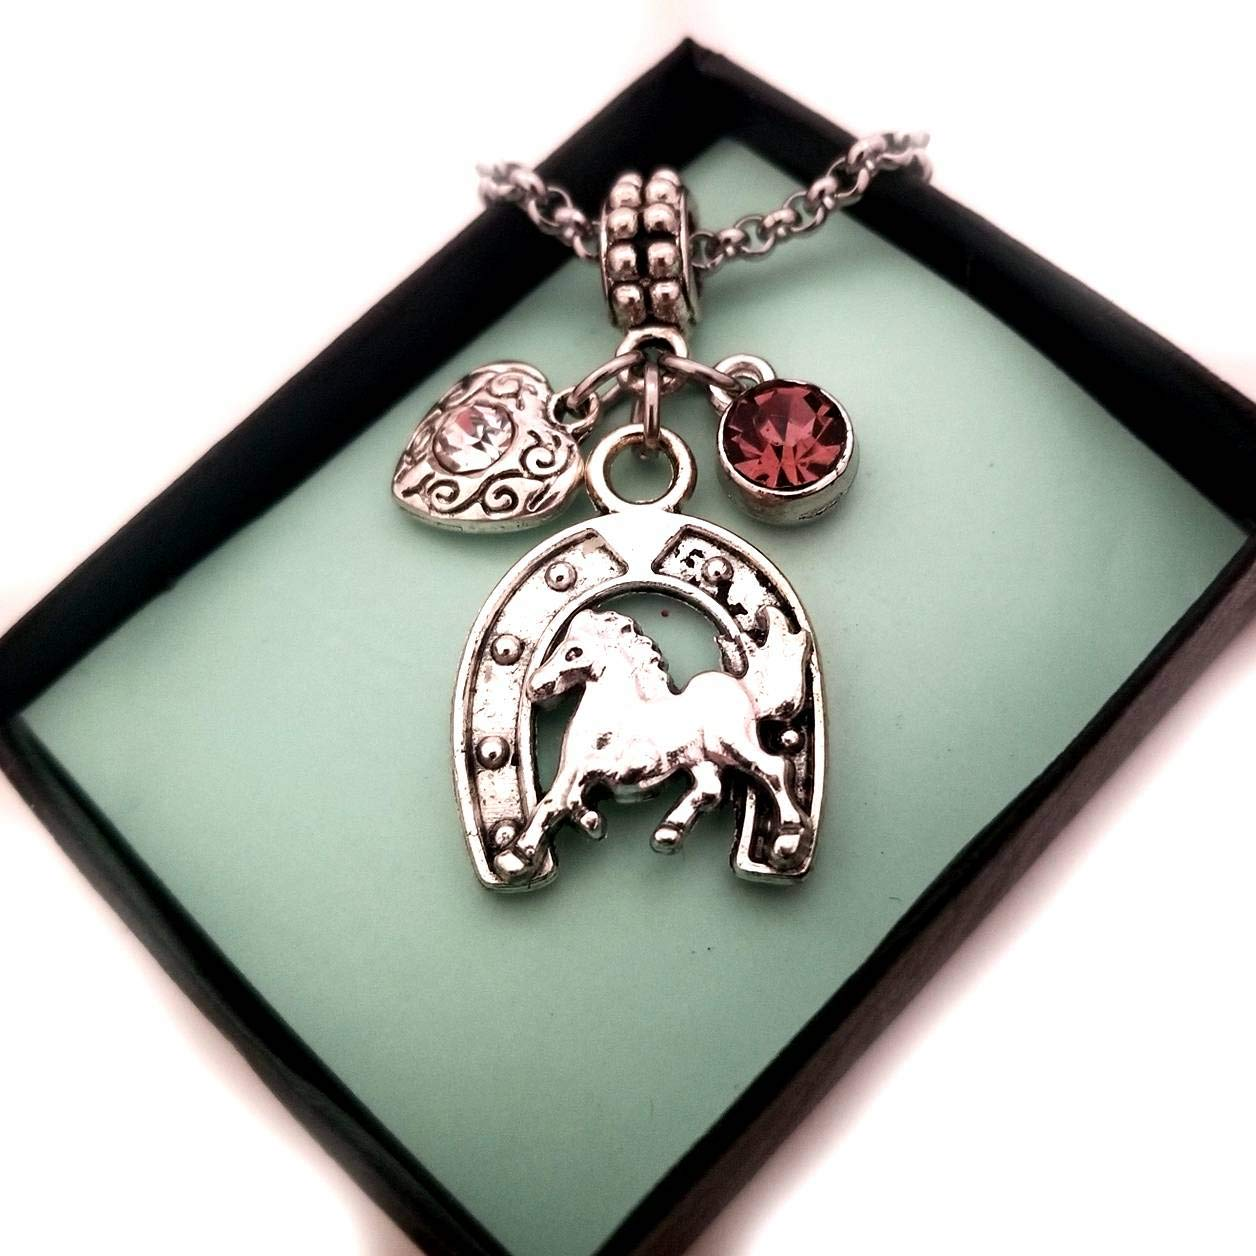 girl gift lucky charm Horseshoe bracelet good luck gift lucky horseshoe silver bracelet for women equestrian gifts personalised gift